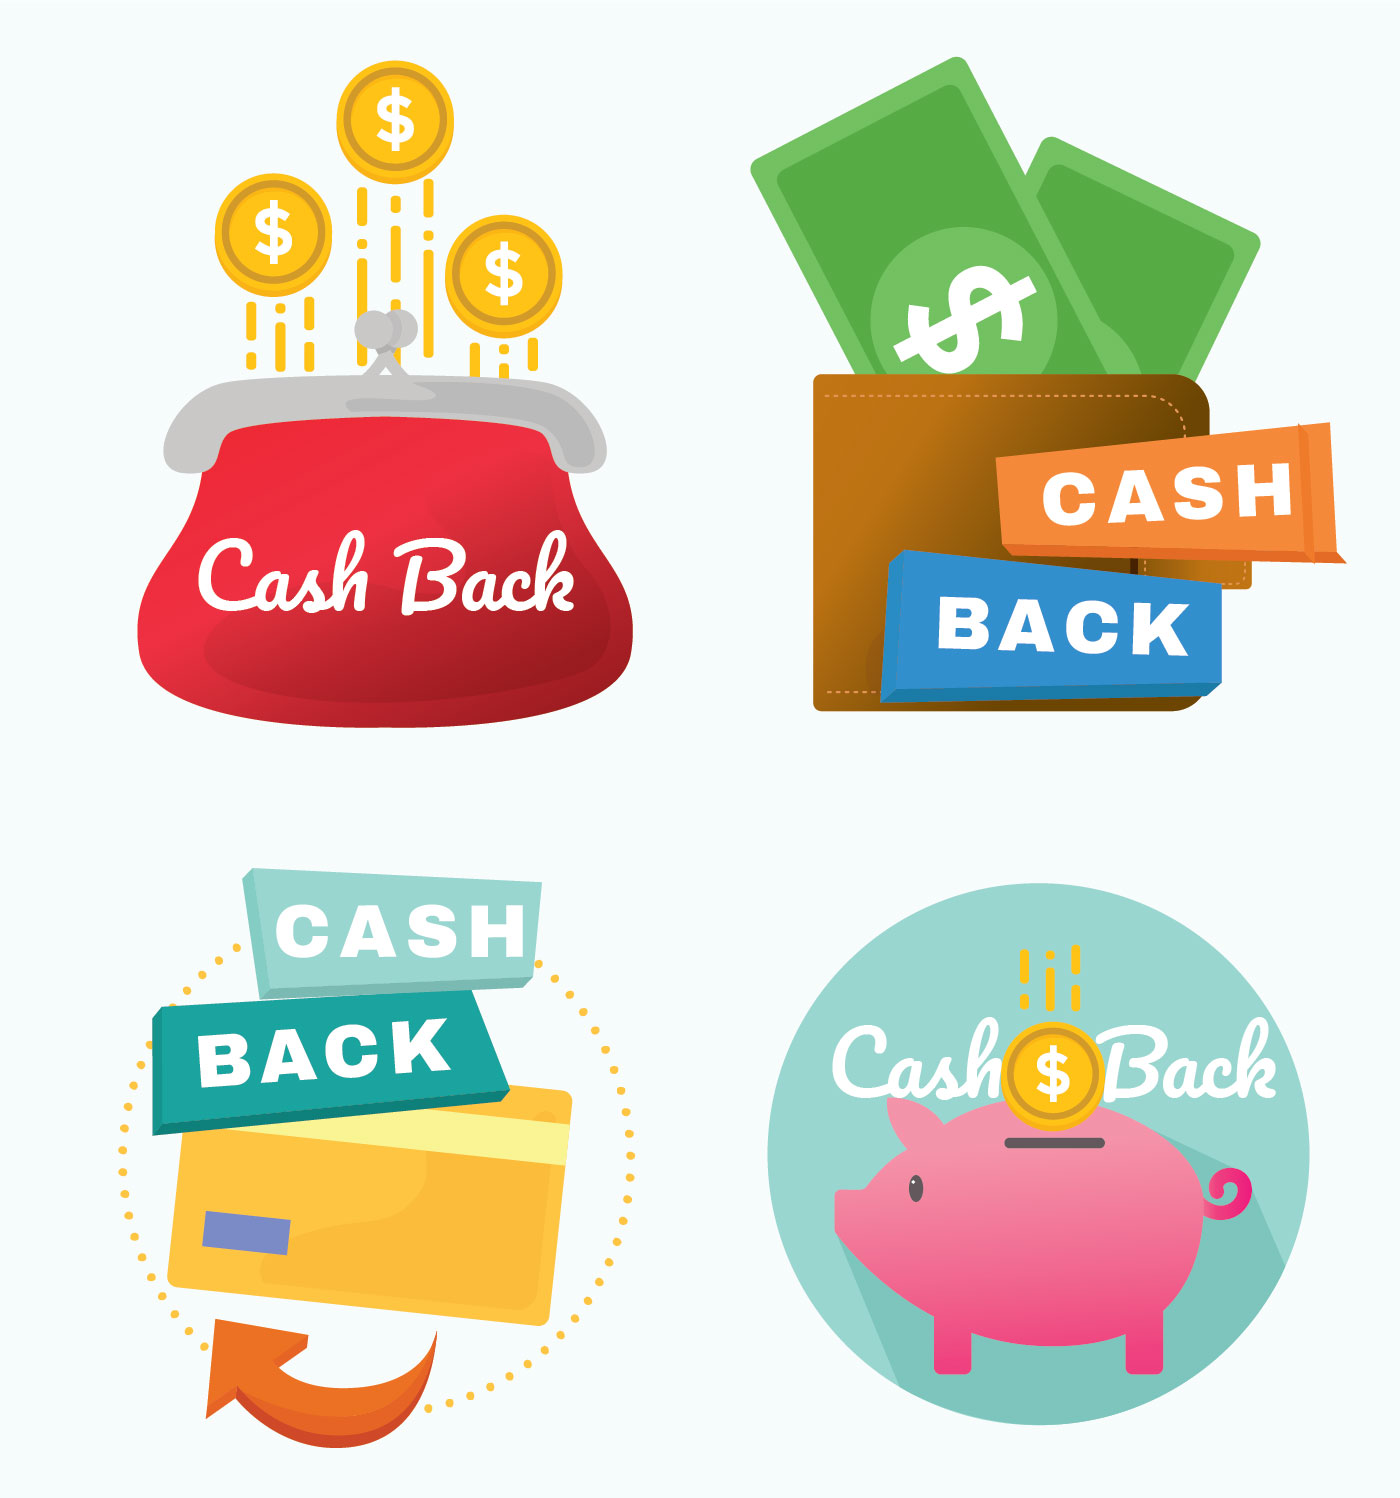 cash back icon vector pack download free vectors clipart graphics vector art https www vecteezy com vector art 182591 cash back icon vector pack